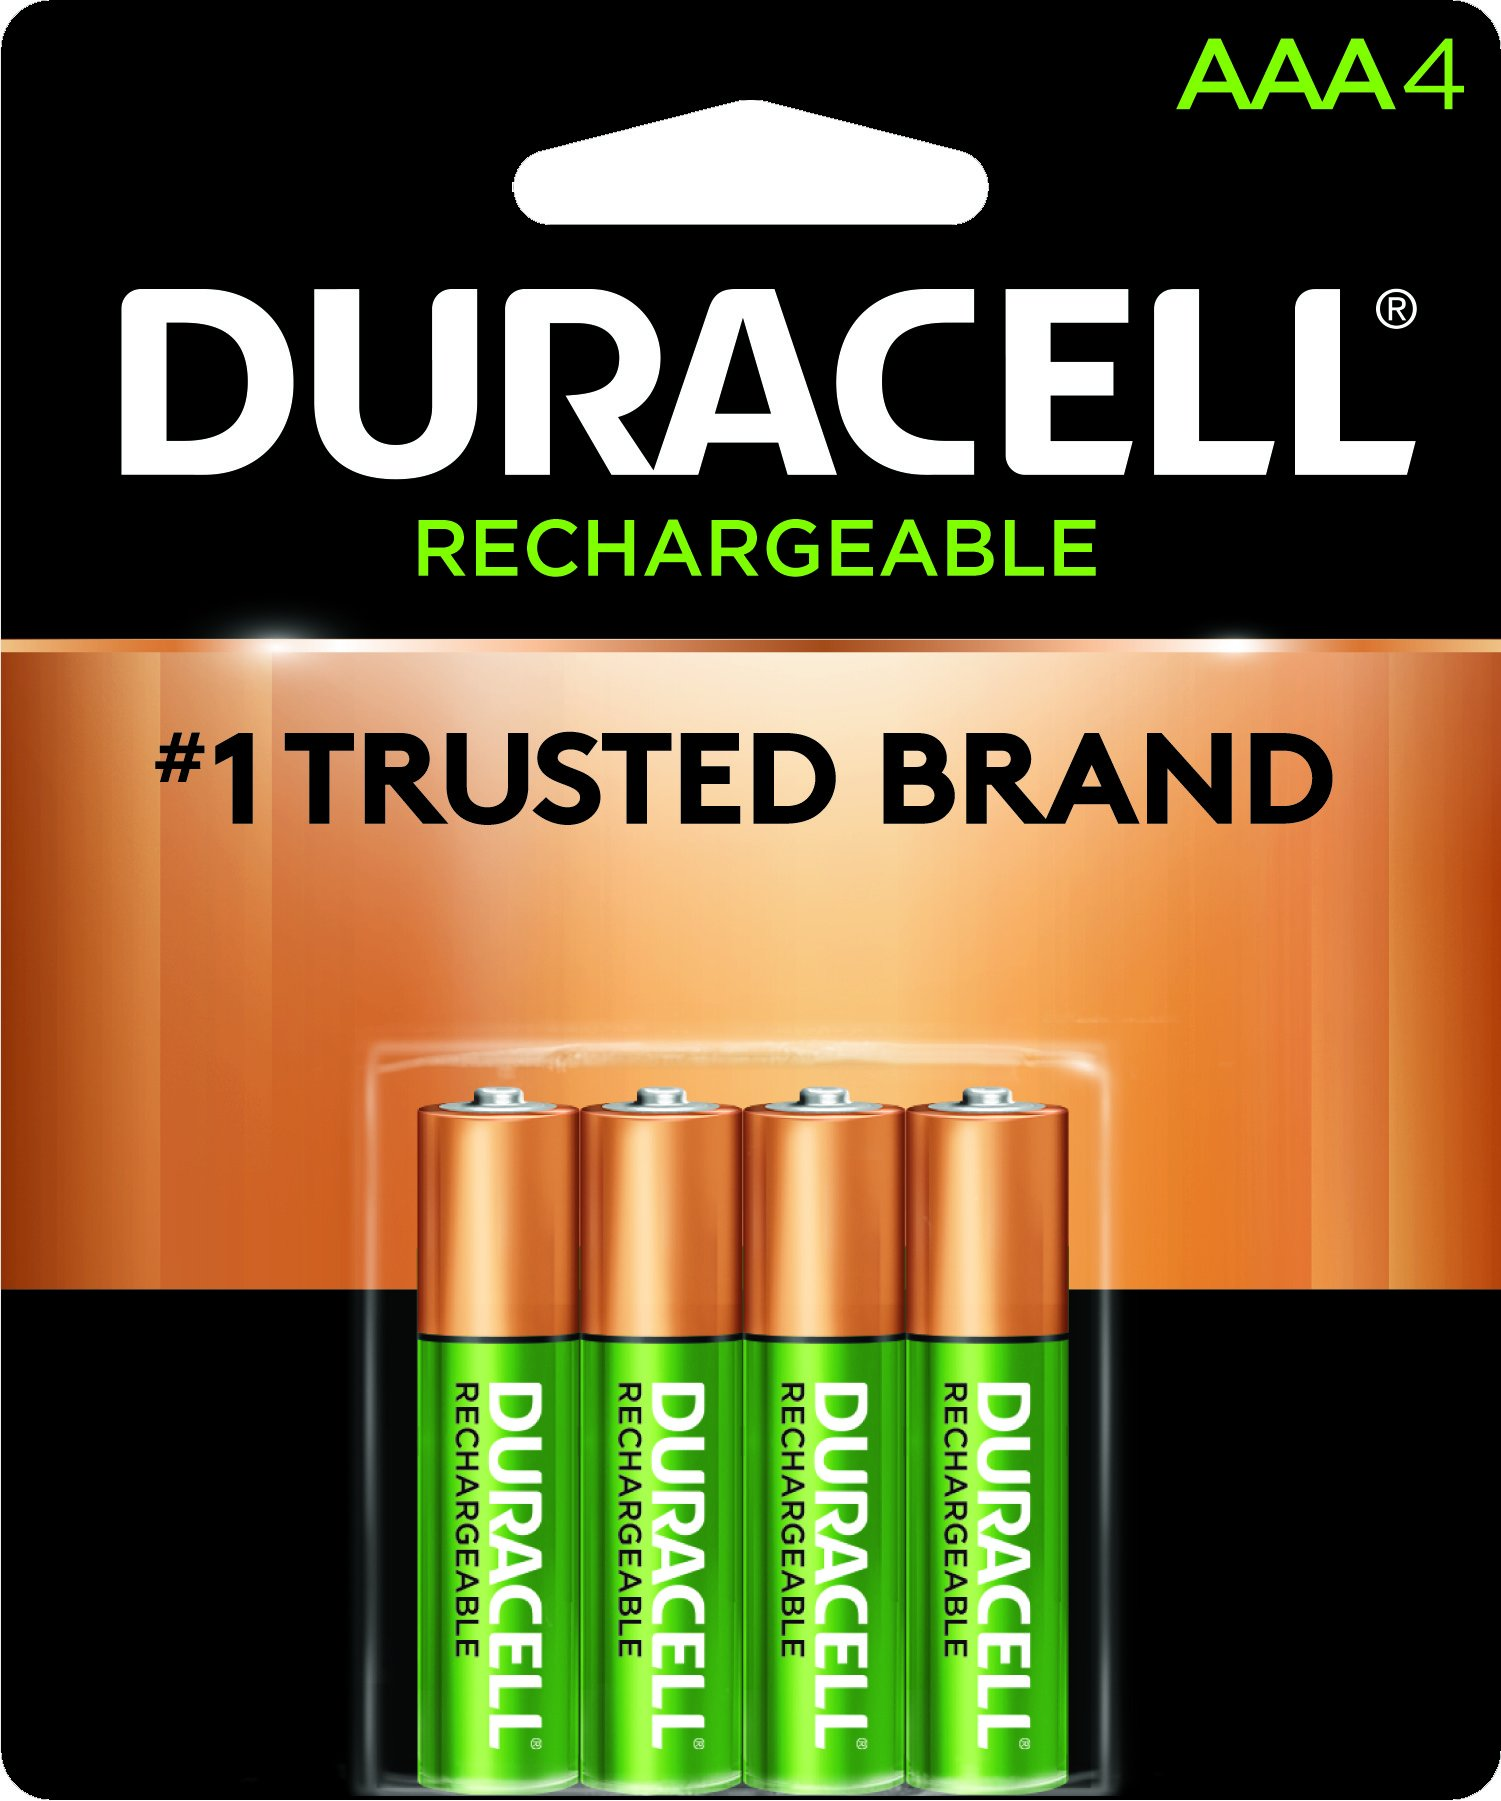 duracell go mobile charger rechargeable. Black Bedroom Furniture Sets. Home Design Ideas